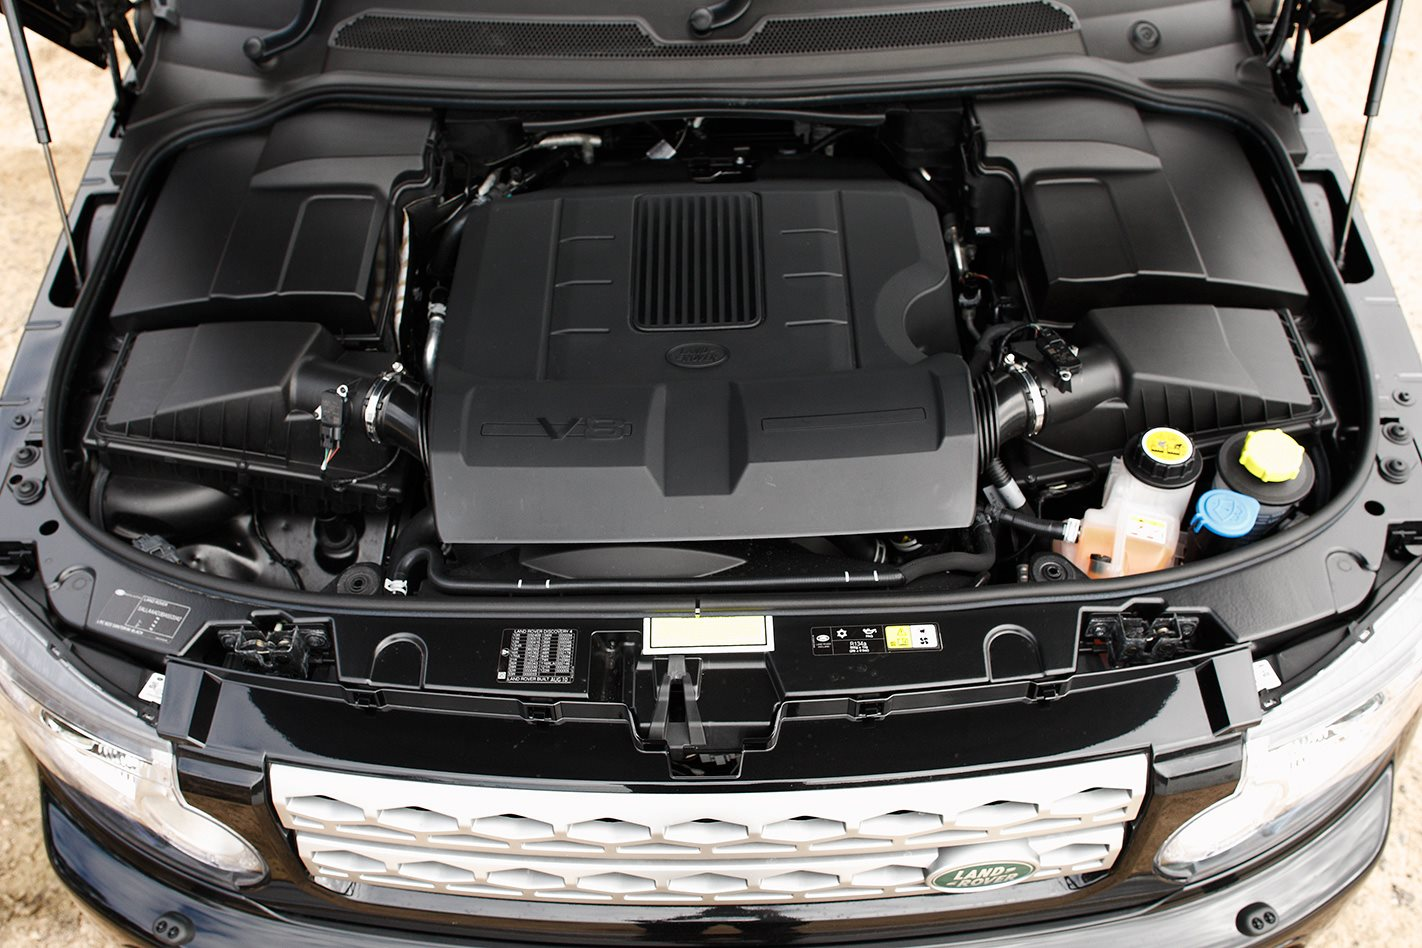 2011 Land Rover Discovery 4 engine.jpg